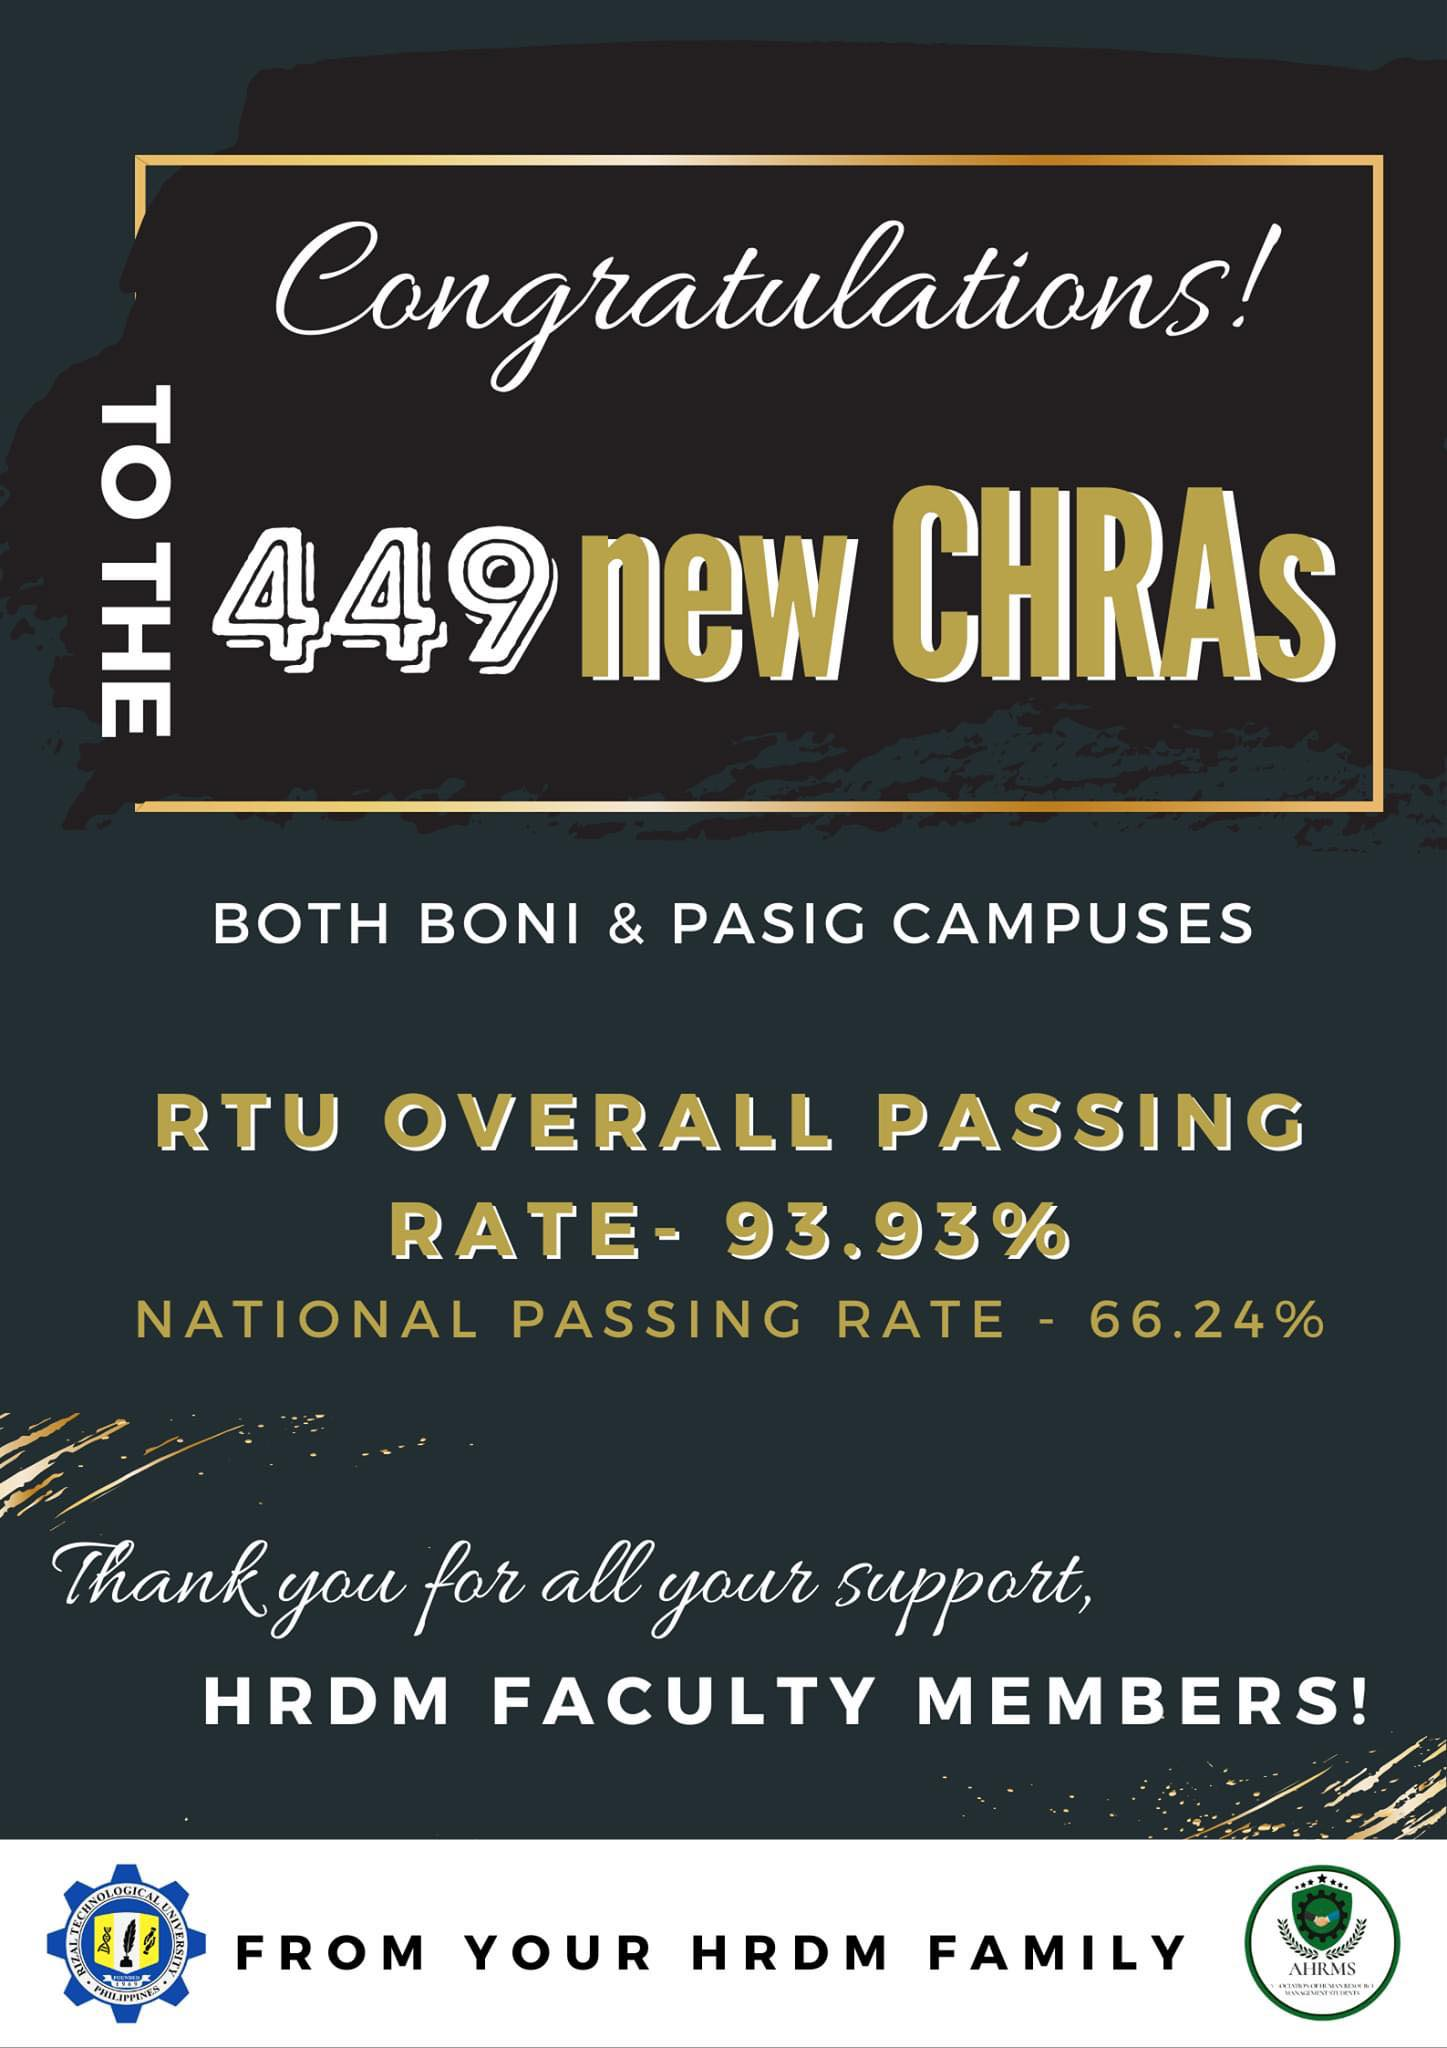 You are currently viewing CONGRATULATIONS TO THE 449 NEW CHRAs (RTU OVERALL PASSING RATE-93.93%)